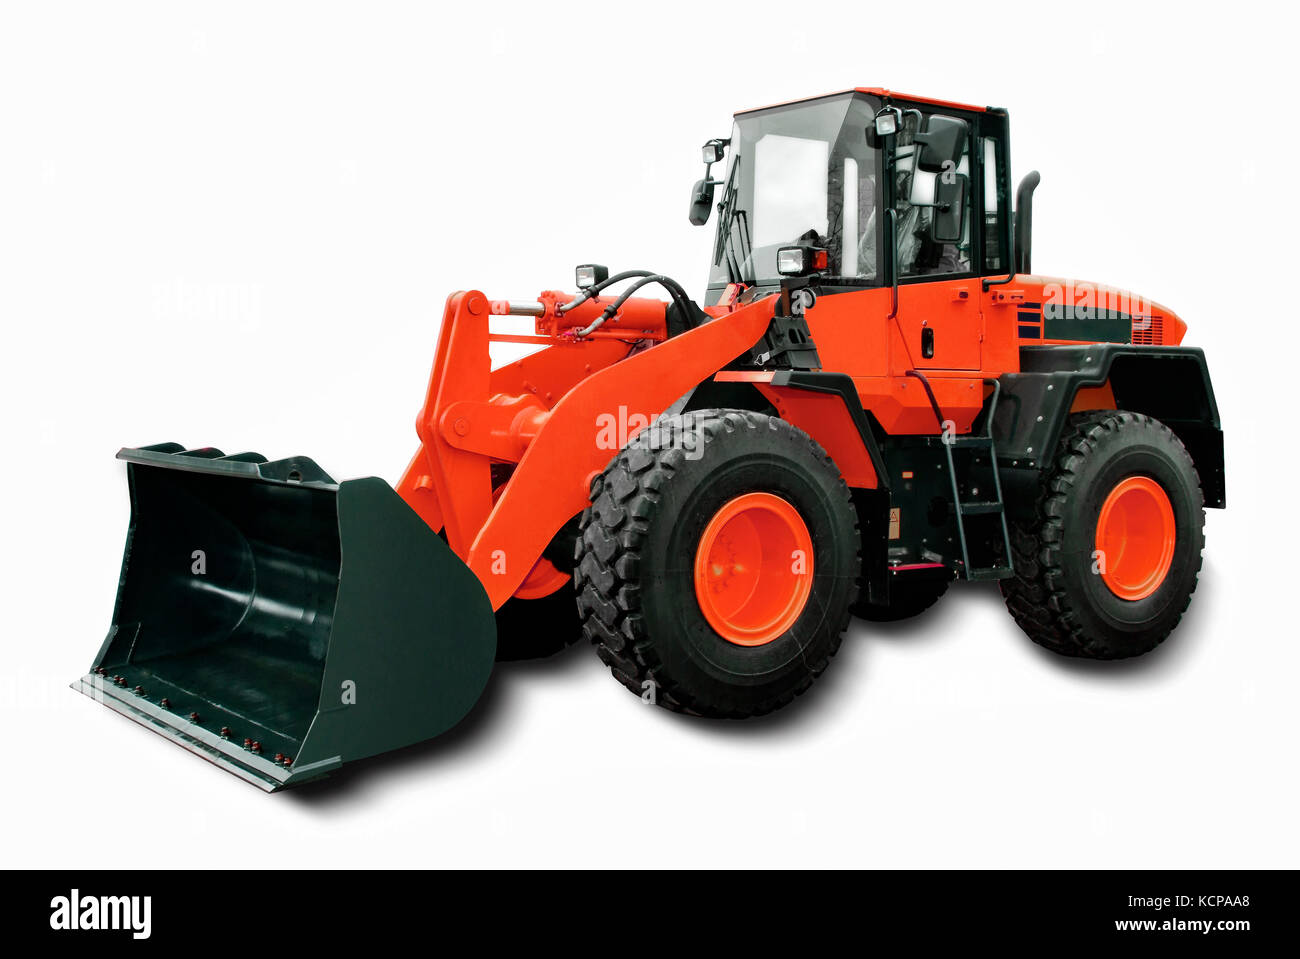 Red Wheel Loader isolated on white background. - Stock Image